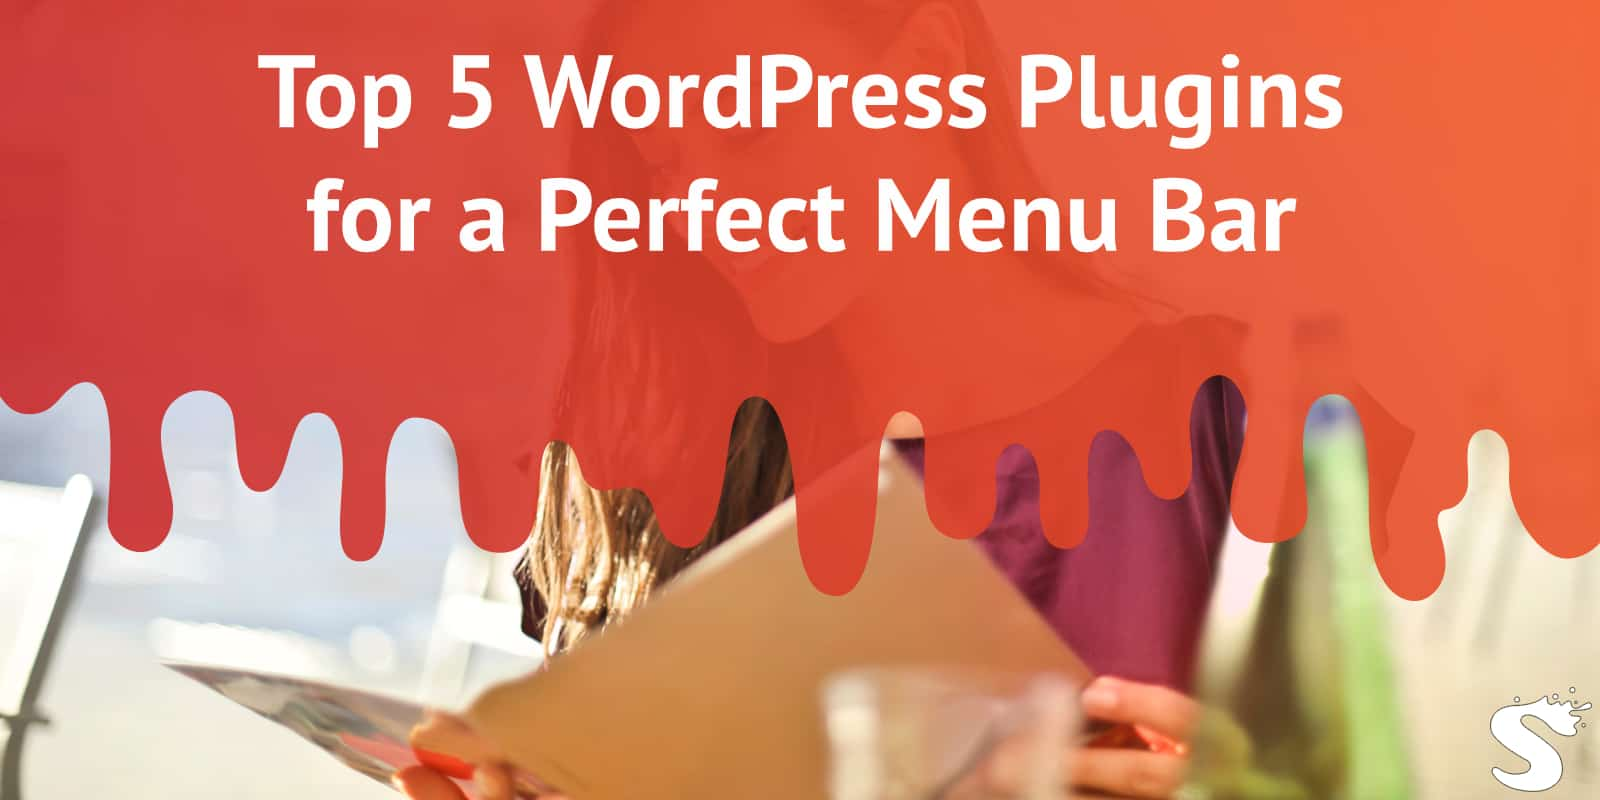 Top 5 Menu WordPress Plugins for an Impeccable Menu Bar